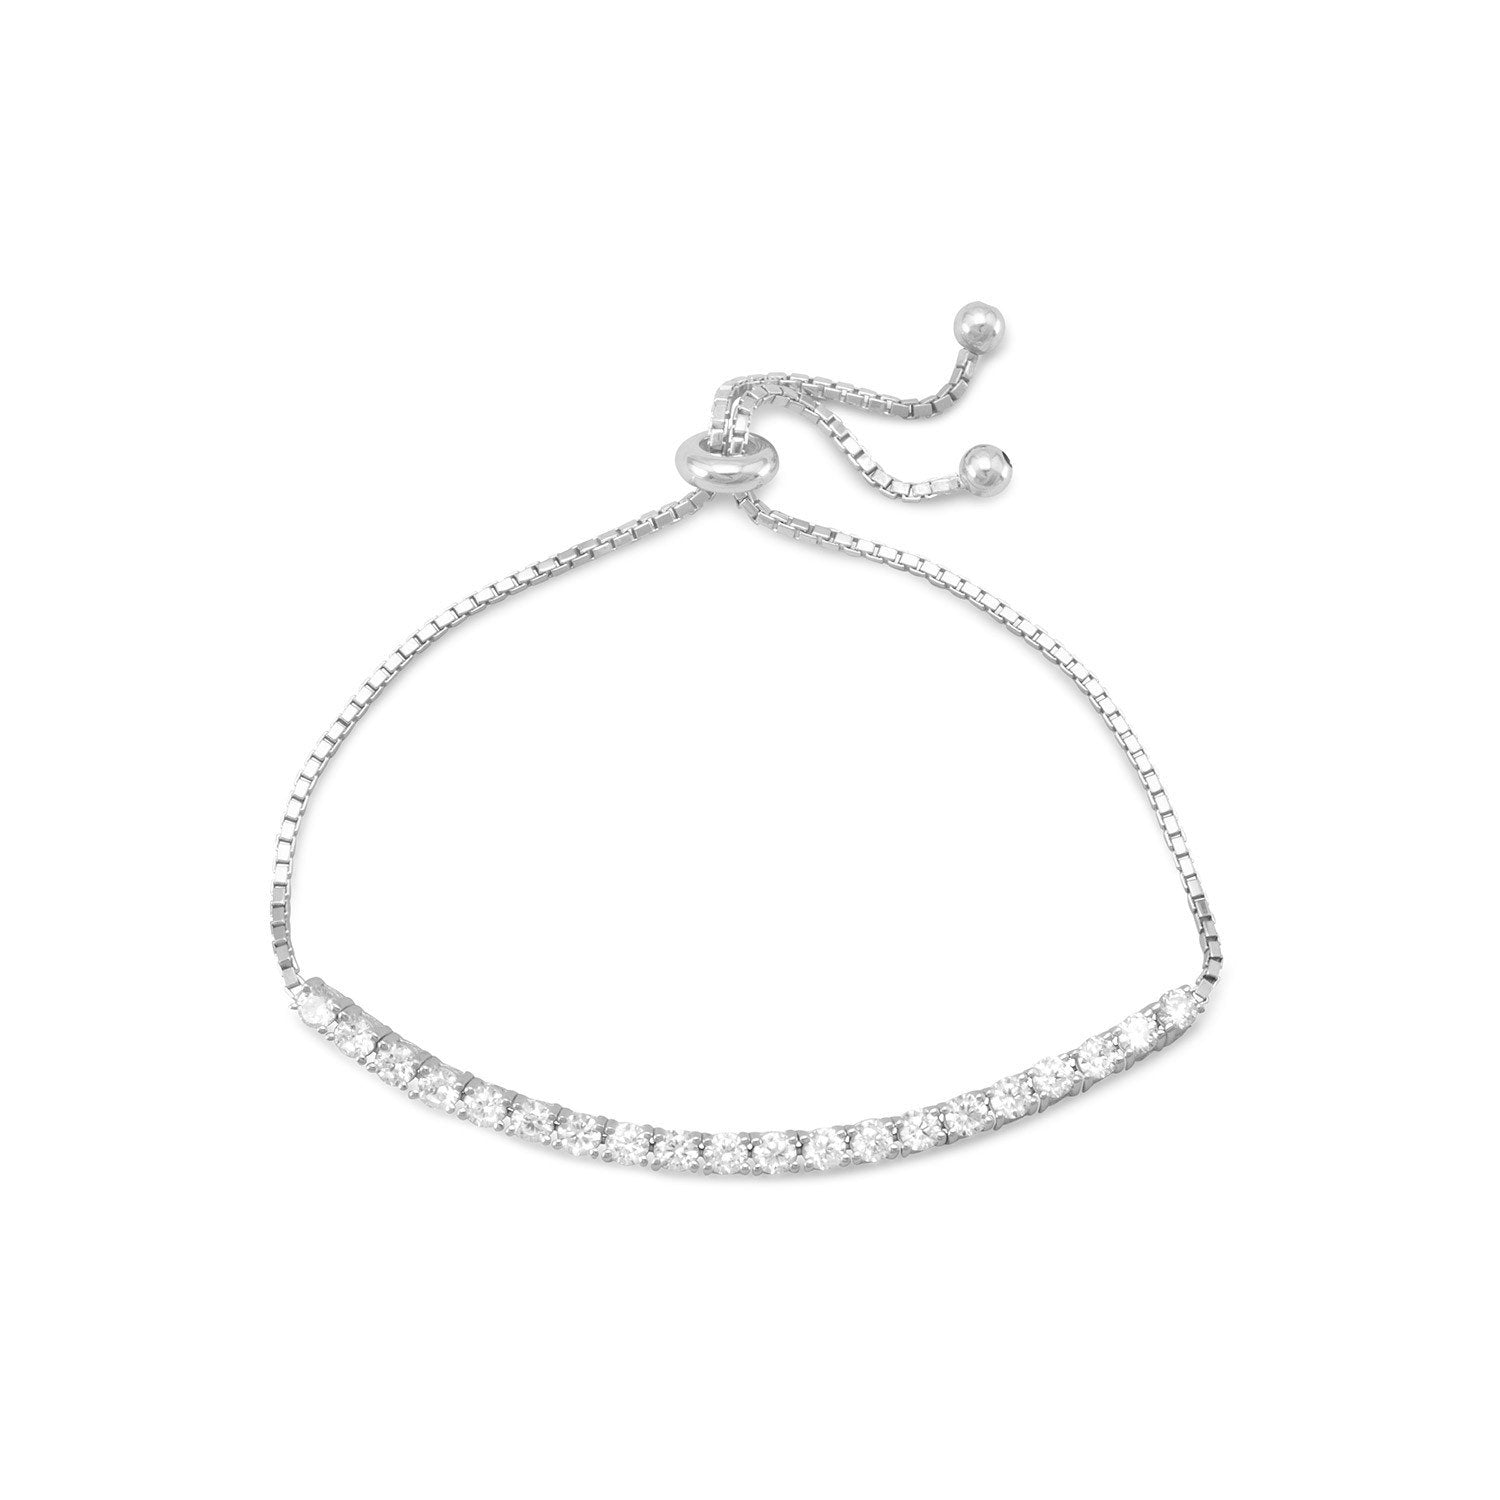 Rhodium Plated CZ Friendship Bolo Bracelet - the-southern-magnolia-too